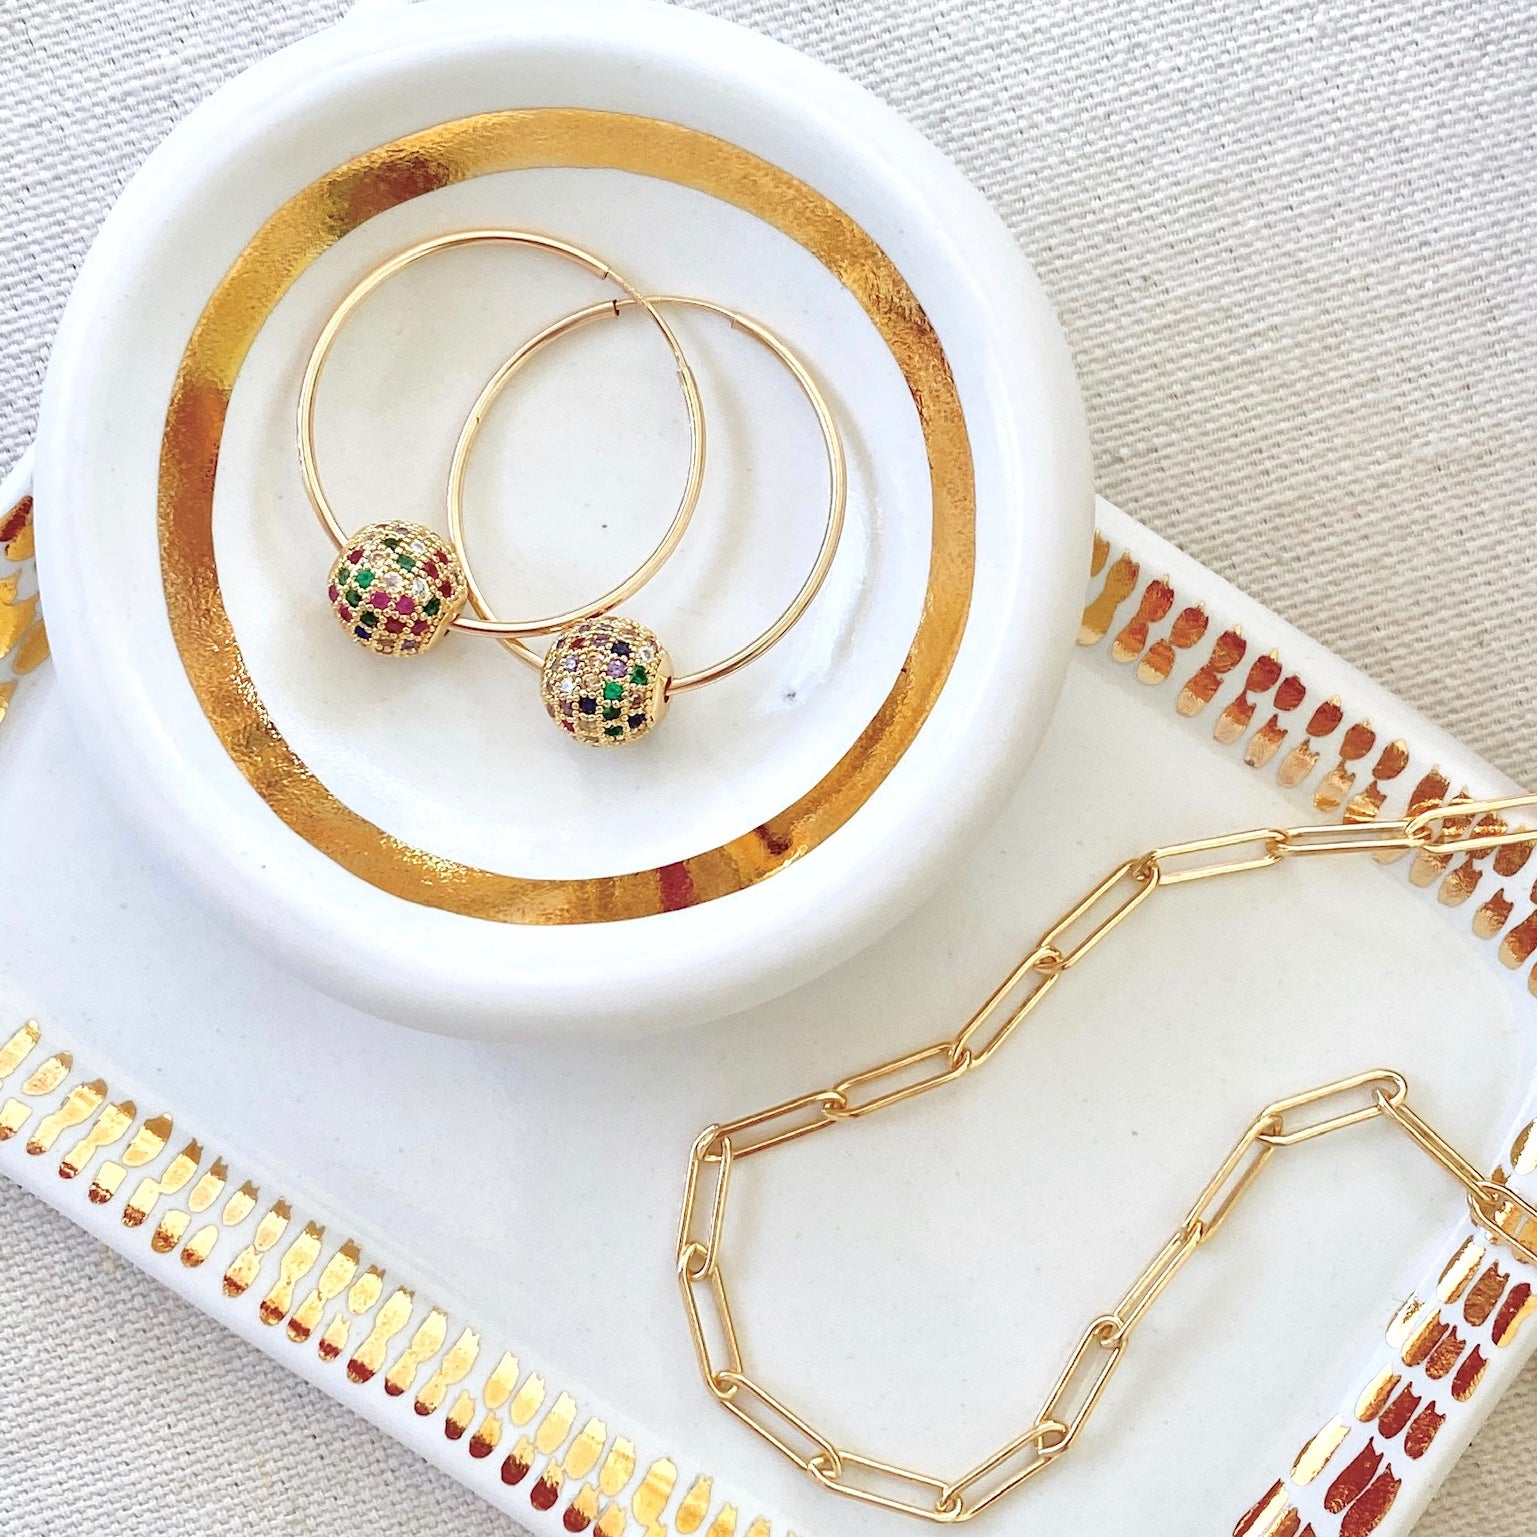 Hoop earrings with studded bead and paperclip necklace on the object enthusiast trinket dish and jewelry tray